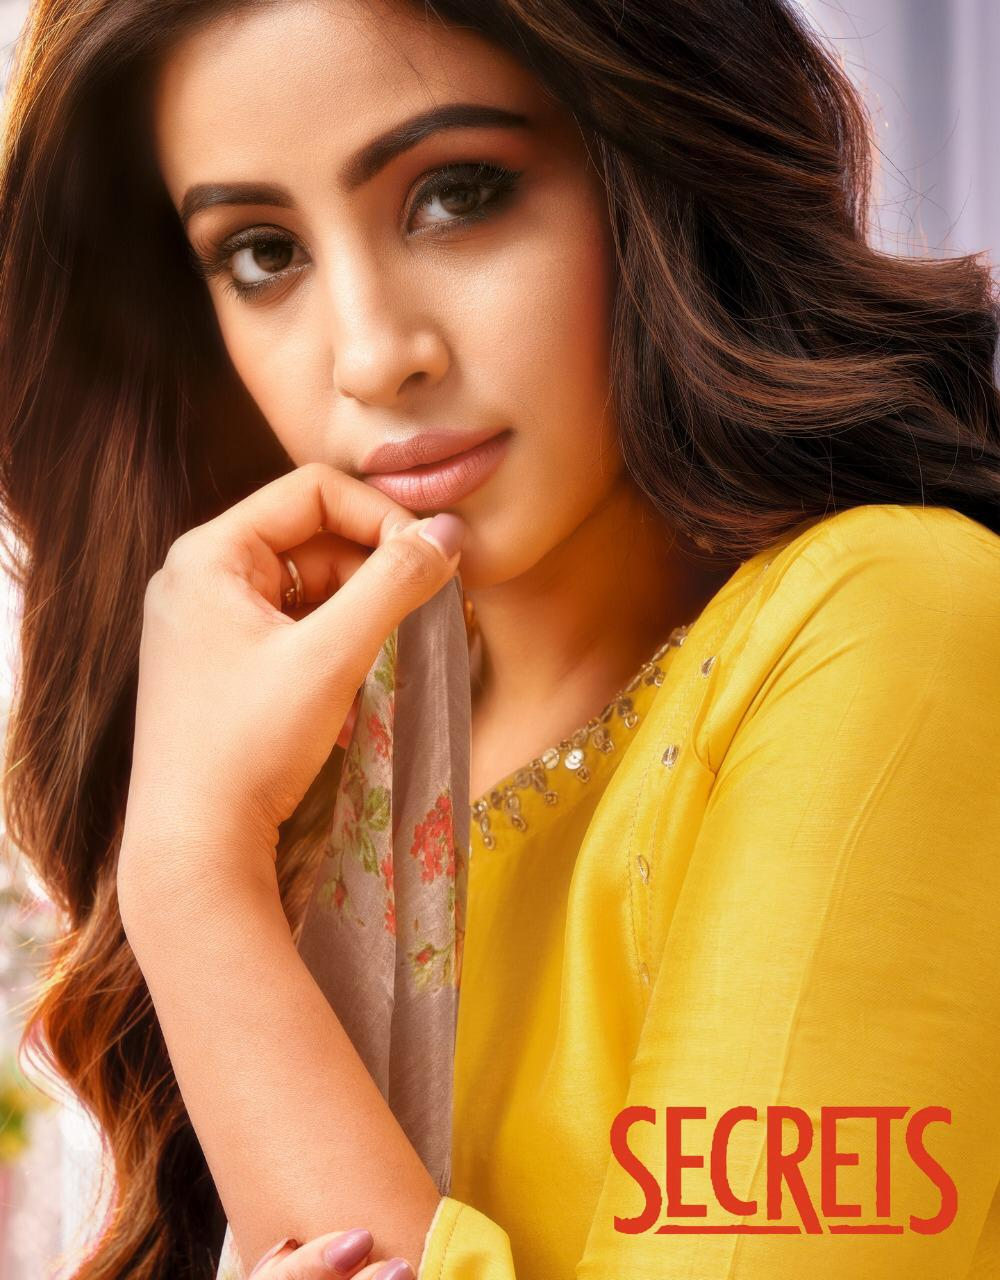 Kapil Trendz Secrets Salwar Suit Wholesale Catalog 9 Pcs 1 - Kapil Trendz Secrets Salwar Suit Wholesale Catalog 9 Pcs